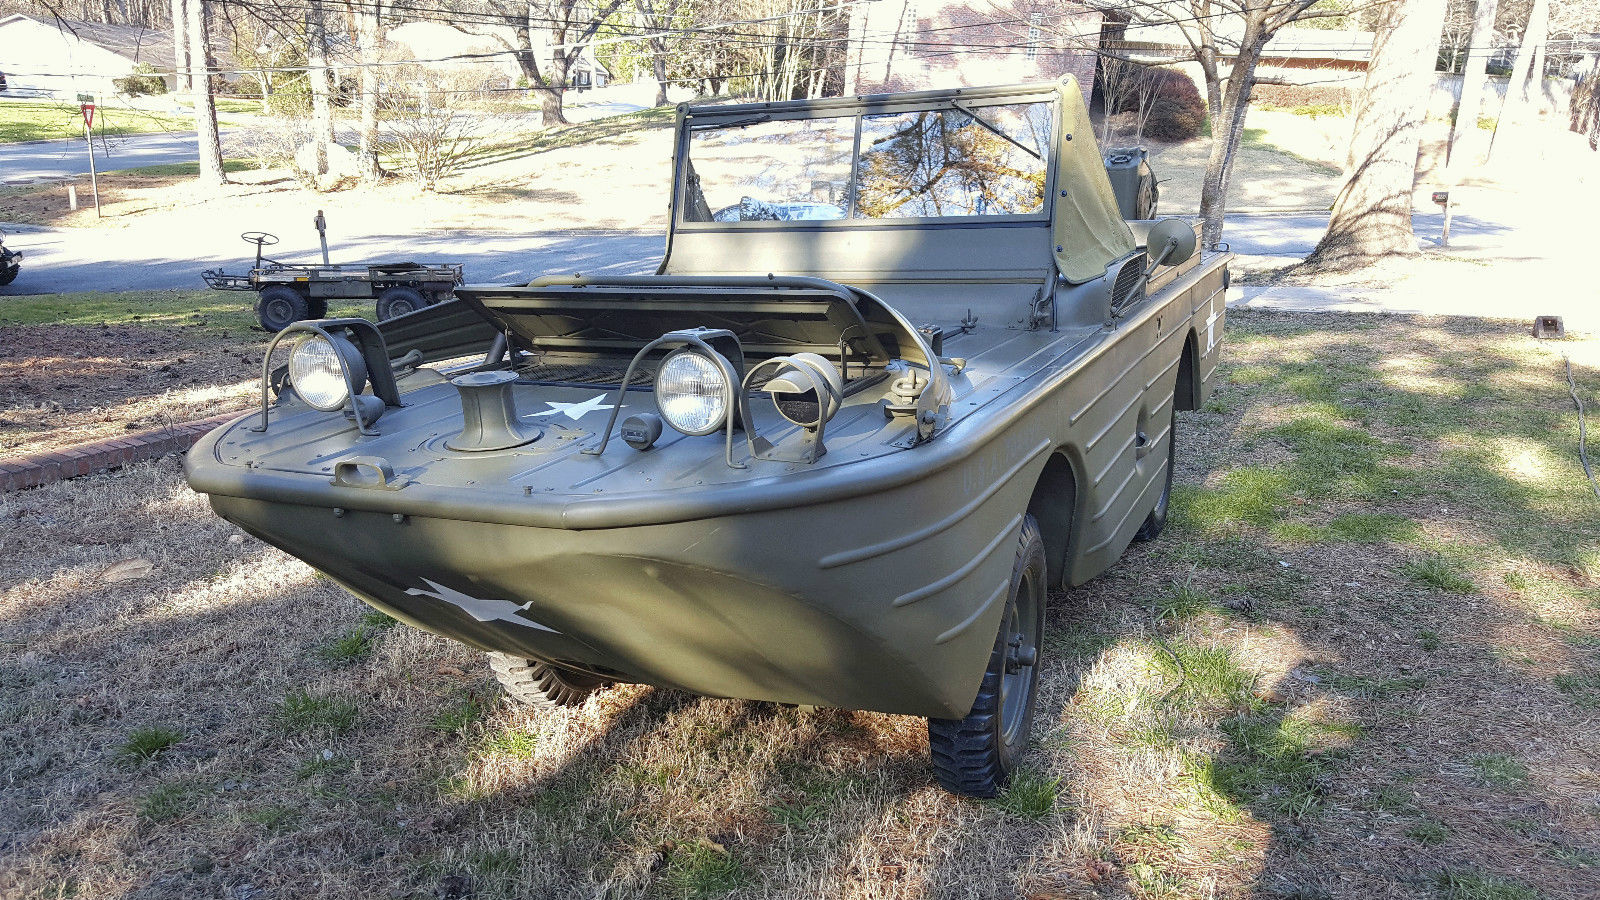 1942 Ford GPA   Restored Swimmer   Amphibious Jeep for sale